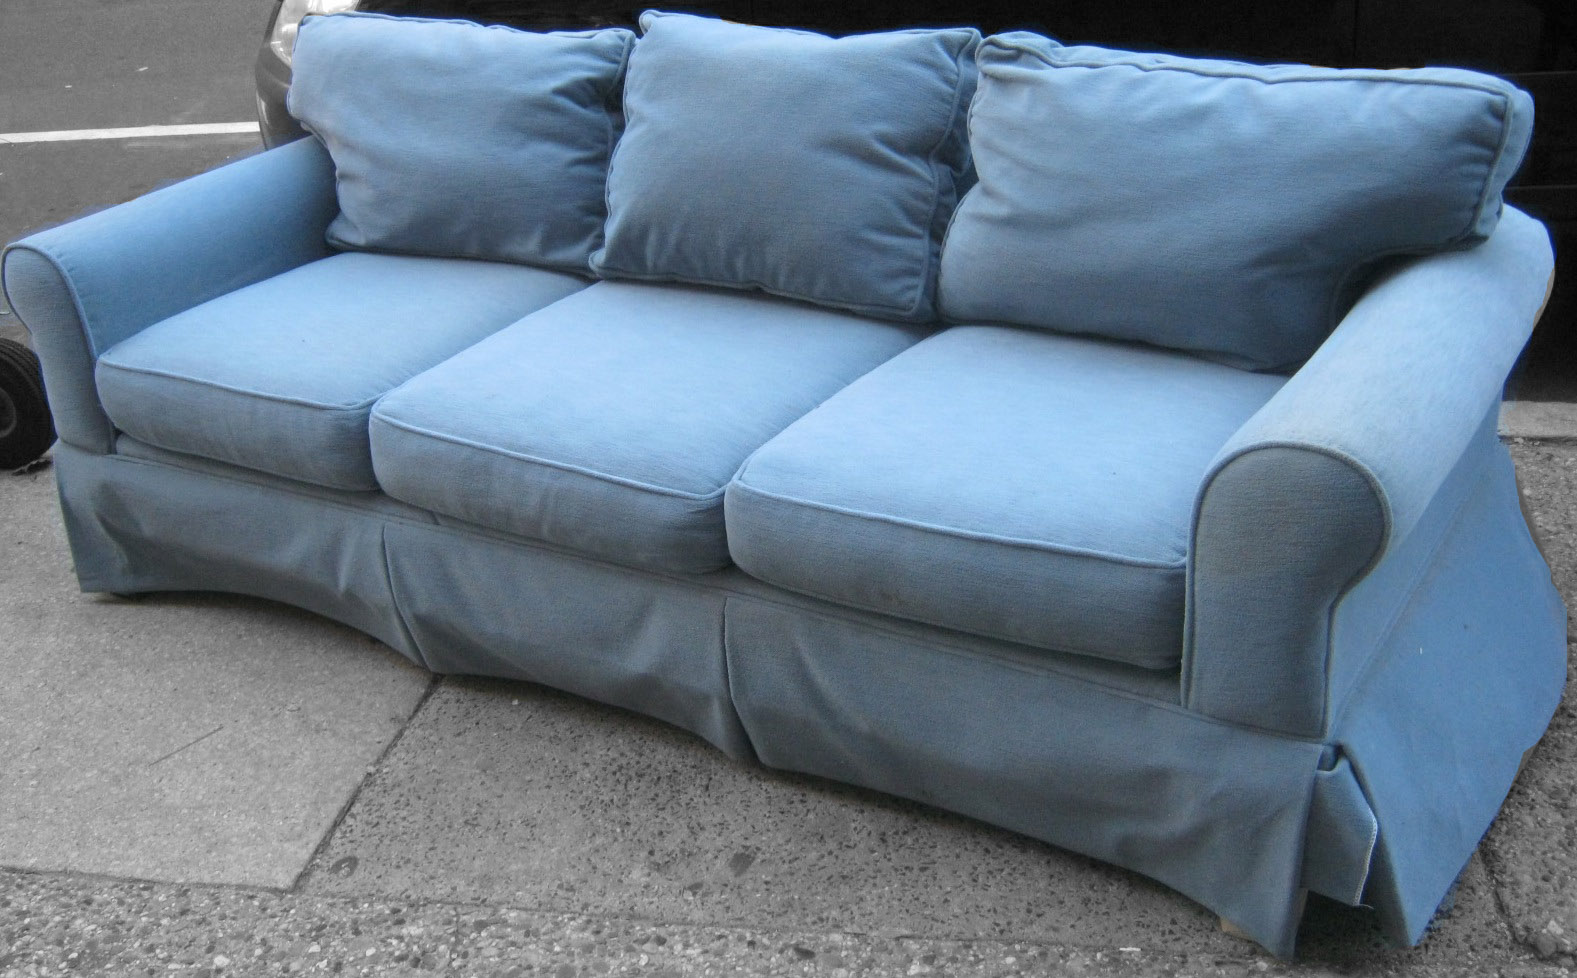 Uhuru Furniture Amp Collectibles Light Blue Sofa Sold